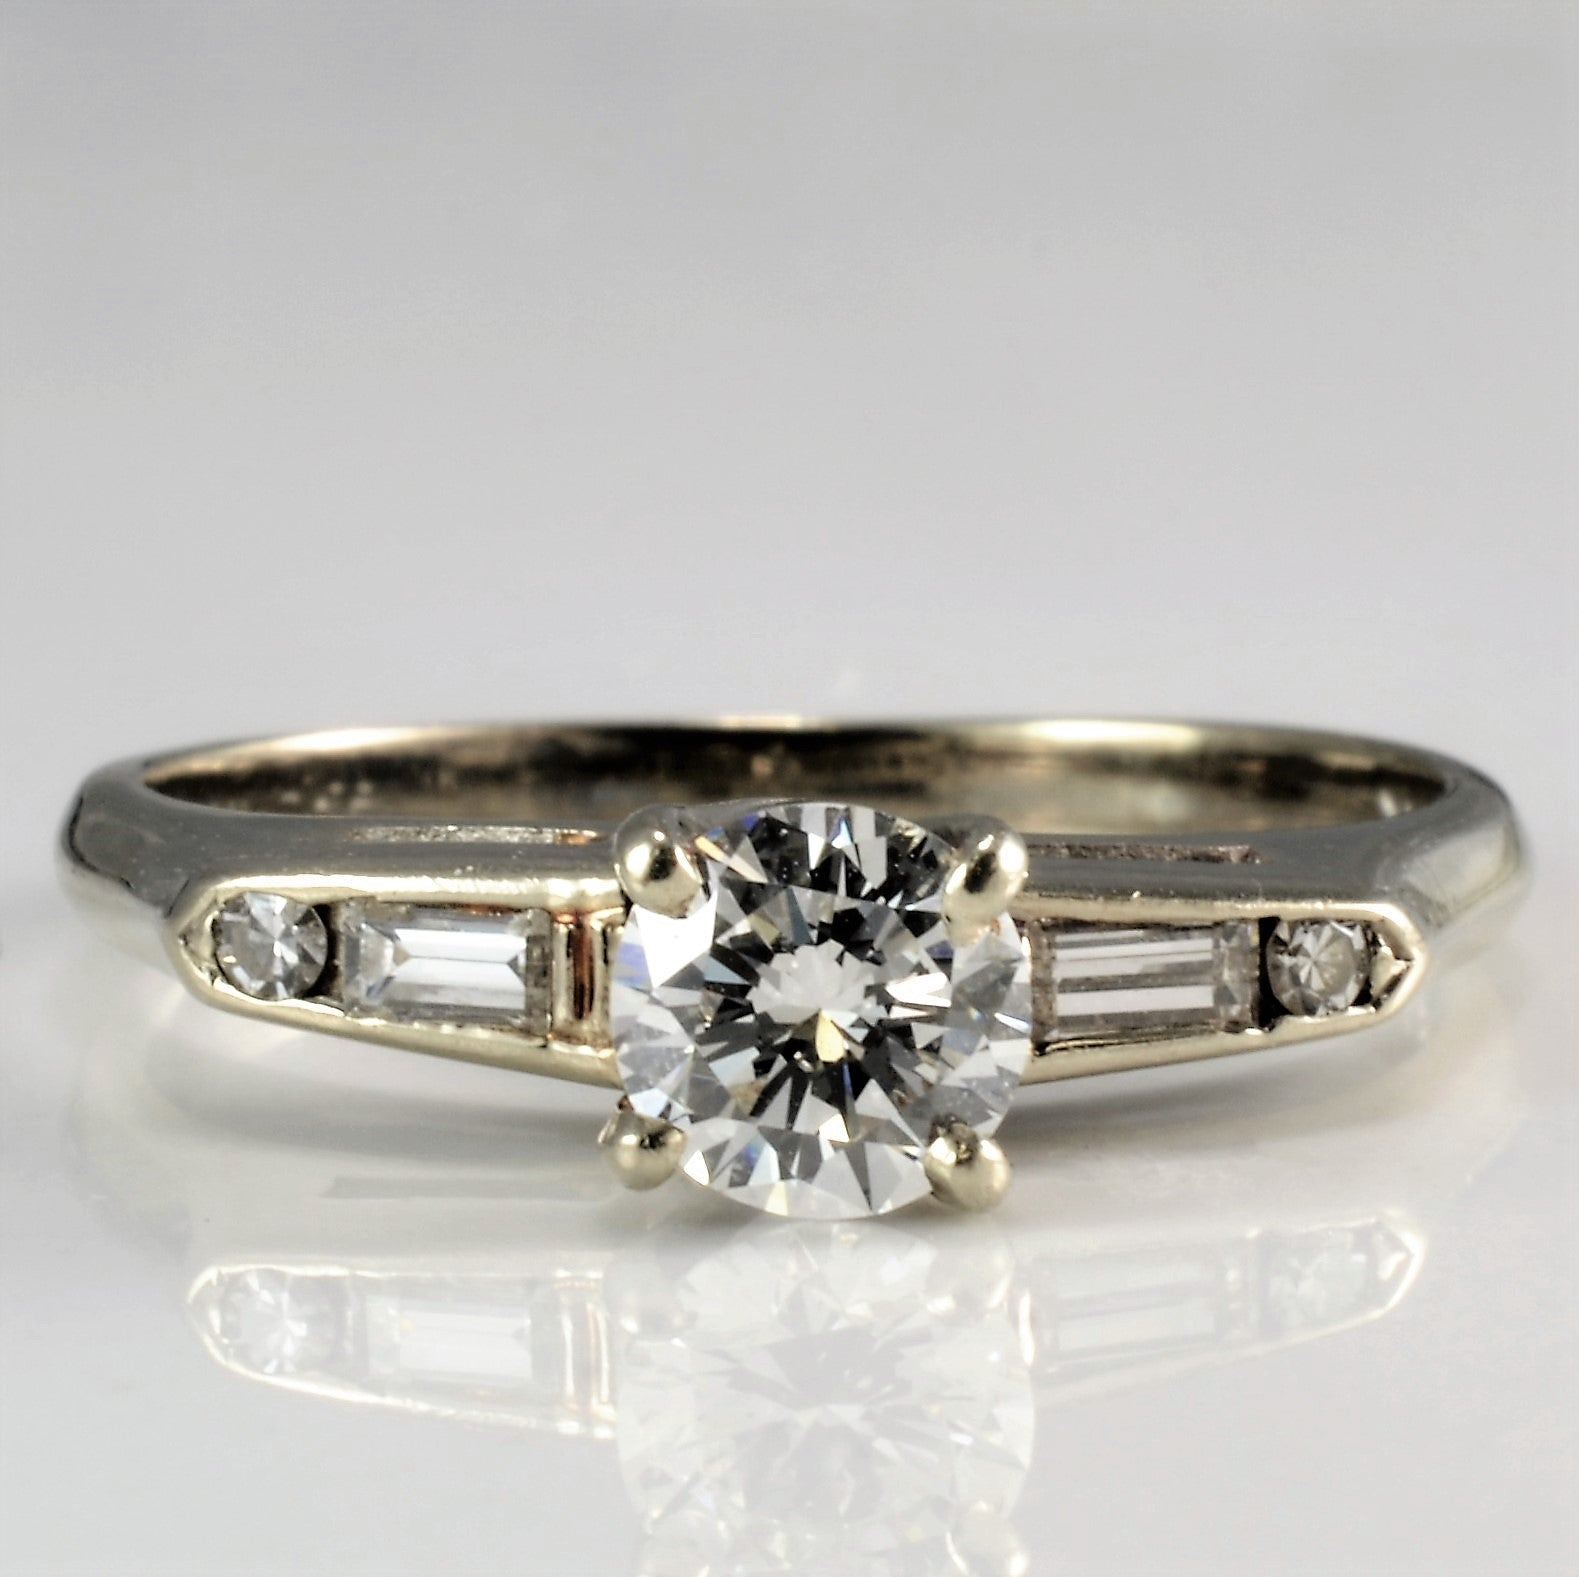 Tapered Multi Diamond Engagement Ring | 0.53 ctw, SZ 6.25 |